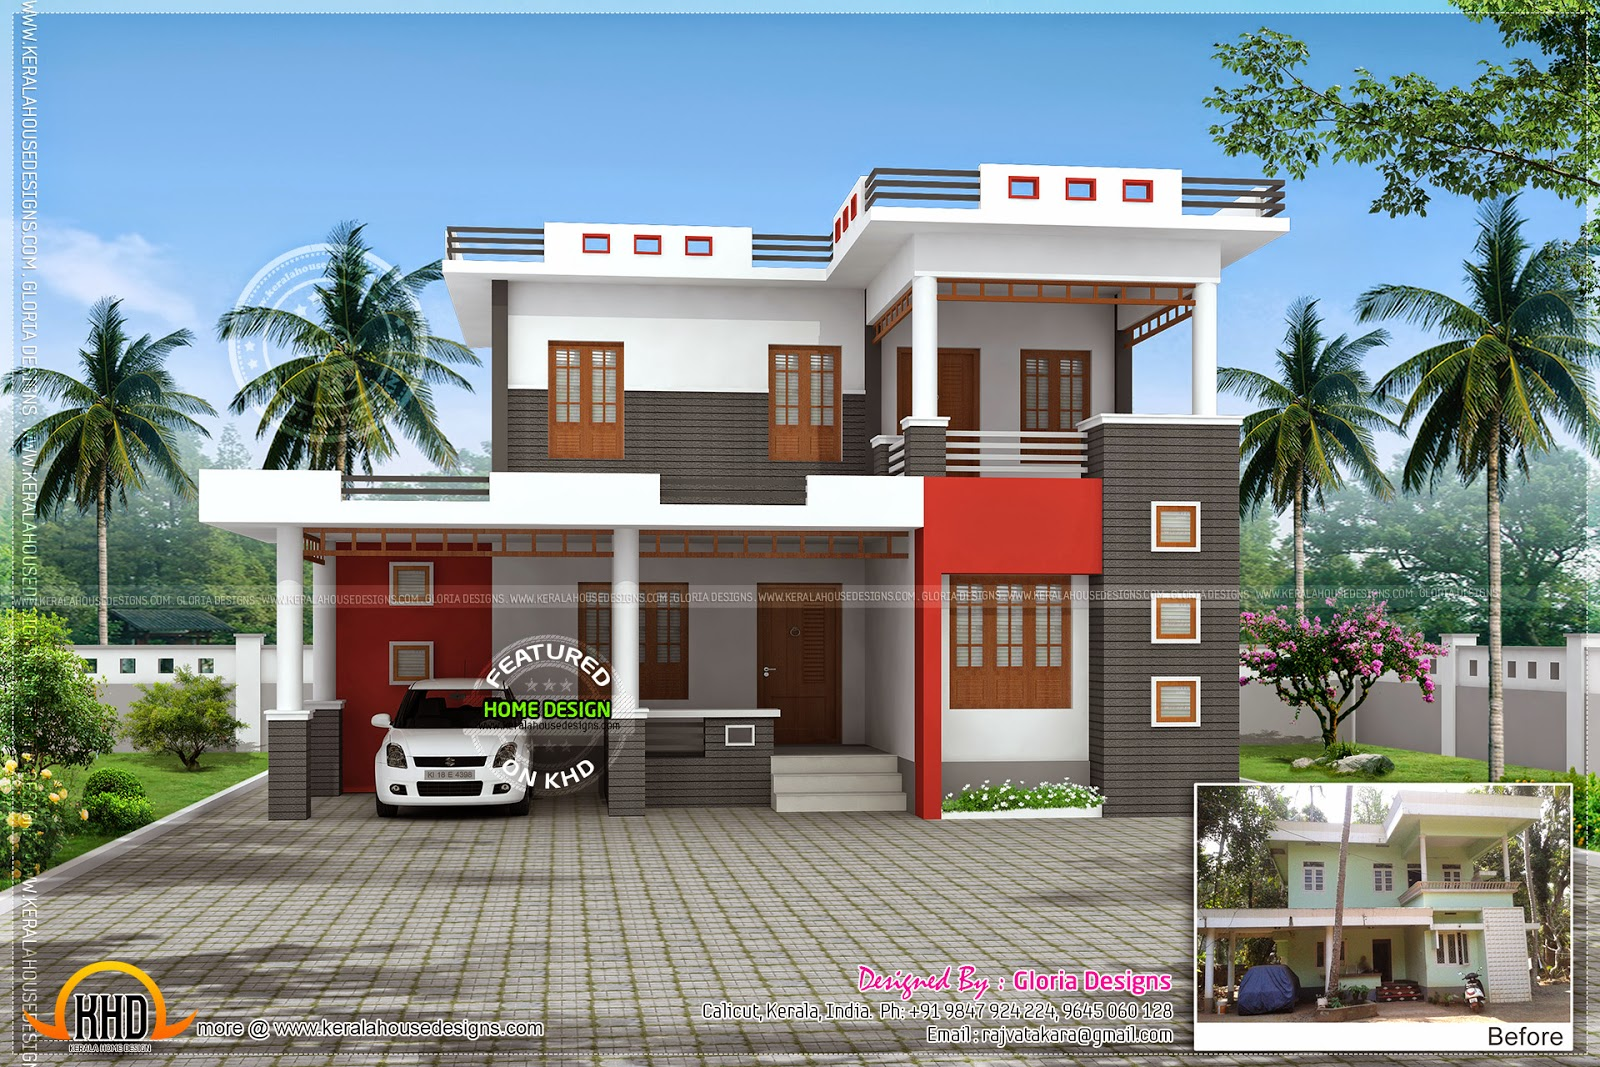 Renovation 3d model for an old house kerala home design for Model house photos in indian